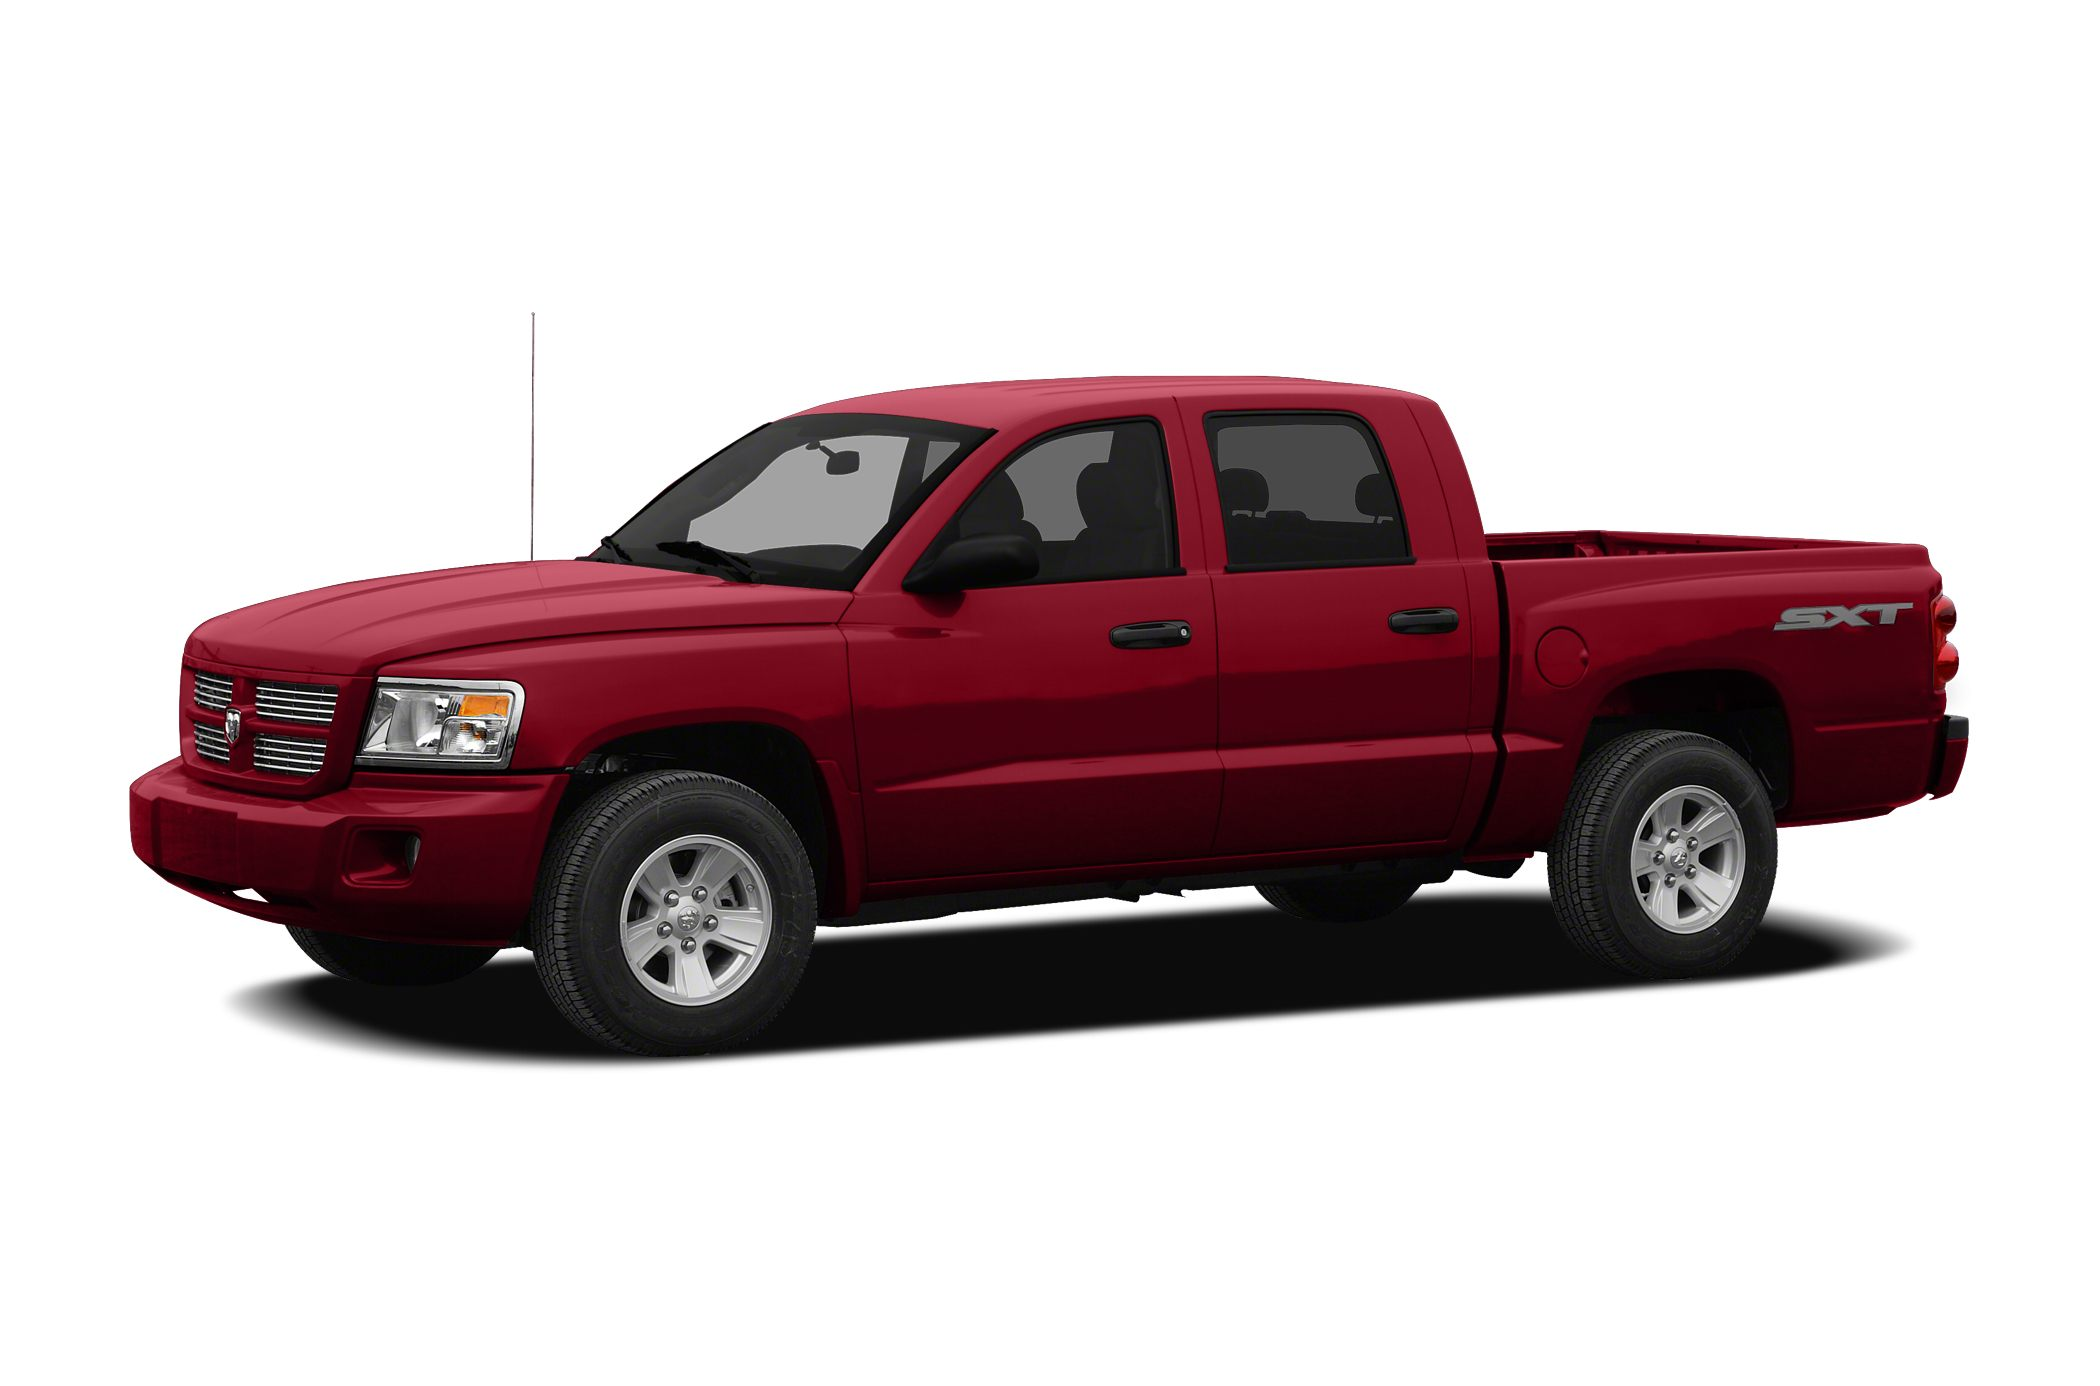 2011 Dodge Dakota Big Horn/Lone Star Crew Cab Pickup for sale in Los Angeles for $18,980 with 51,979 miles.